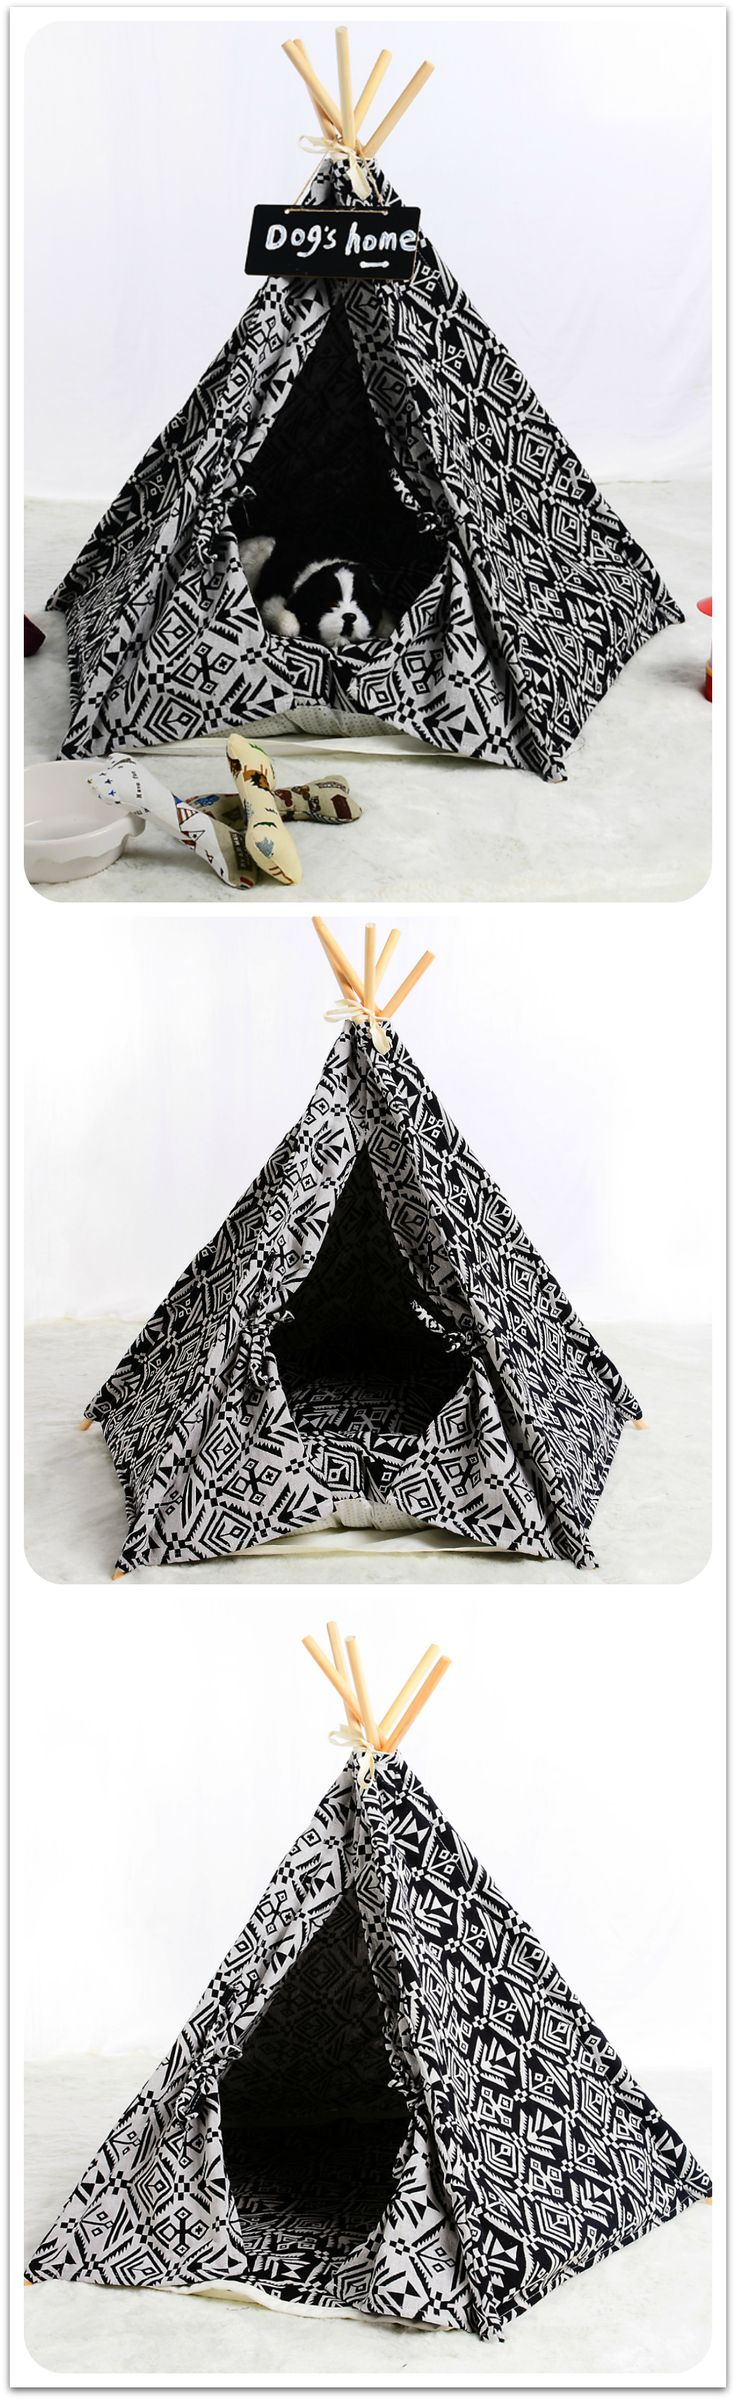 || FREE SHIPPING || Funky, fun tribal prints are showing up everywhere from the runways to the interior designs of luxury homes. Now, your pet can get in on the latest trend and enjoy a relaxing nap in the Black and White Dog Teepee – Tribal Chic! This whimsical cat and dog teepee features a tribal print outside and in with black-on-white and white-on-black patterned panels that catch the eye while still keeping the look of the tipi neutral to suit any color scheme.